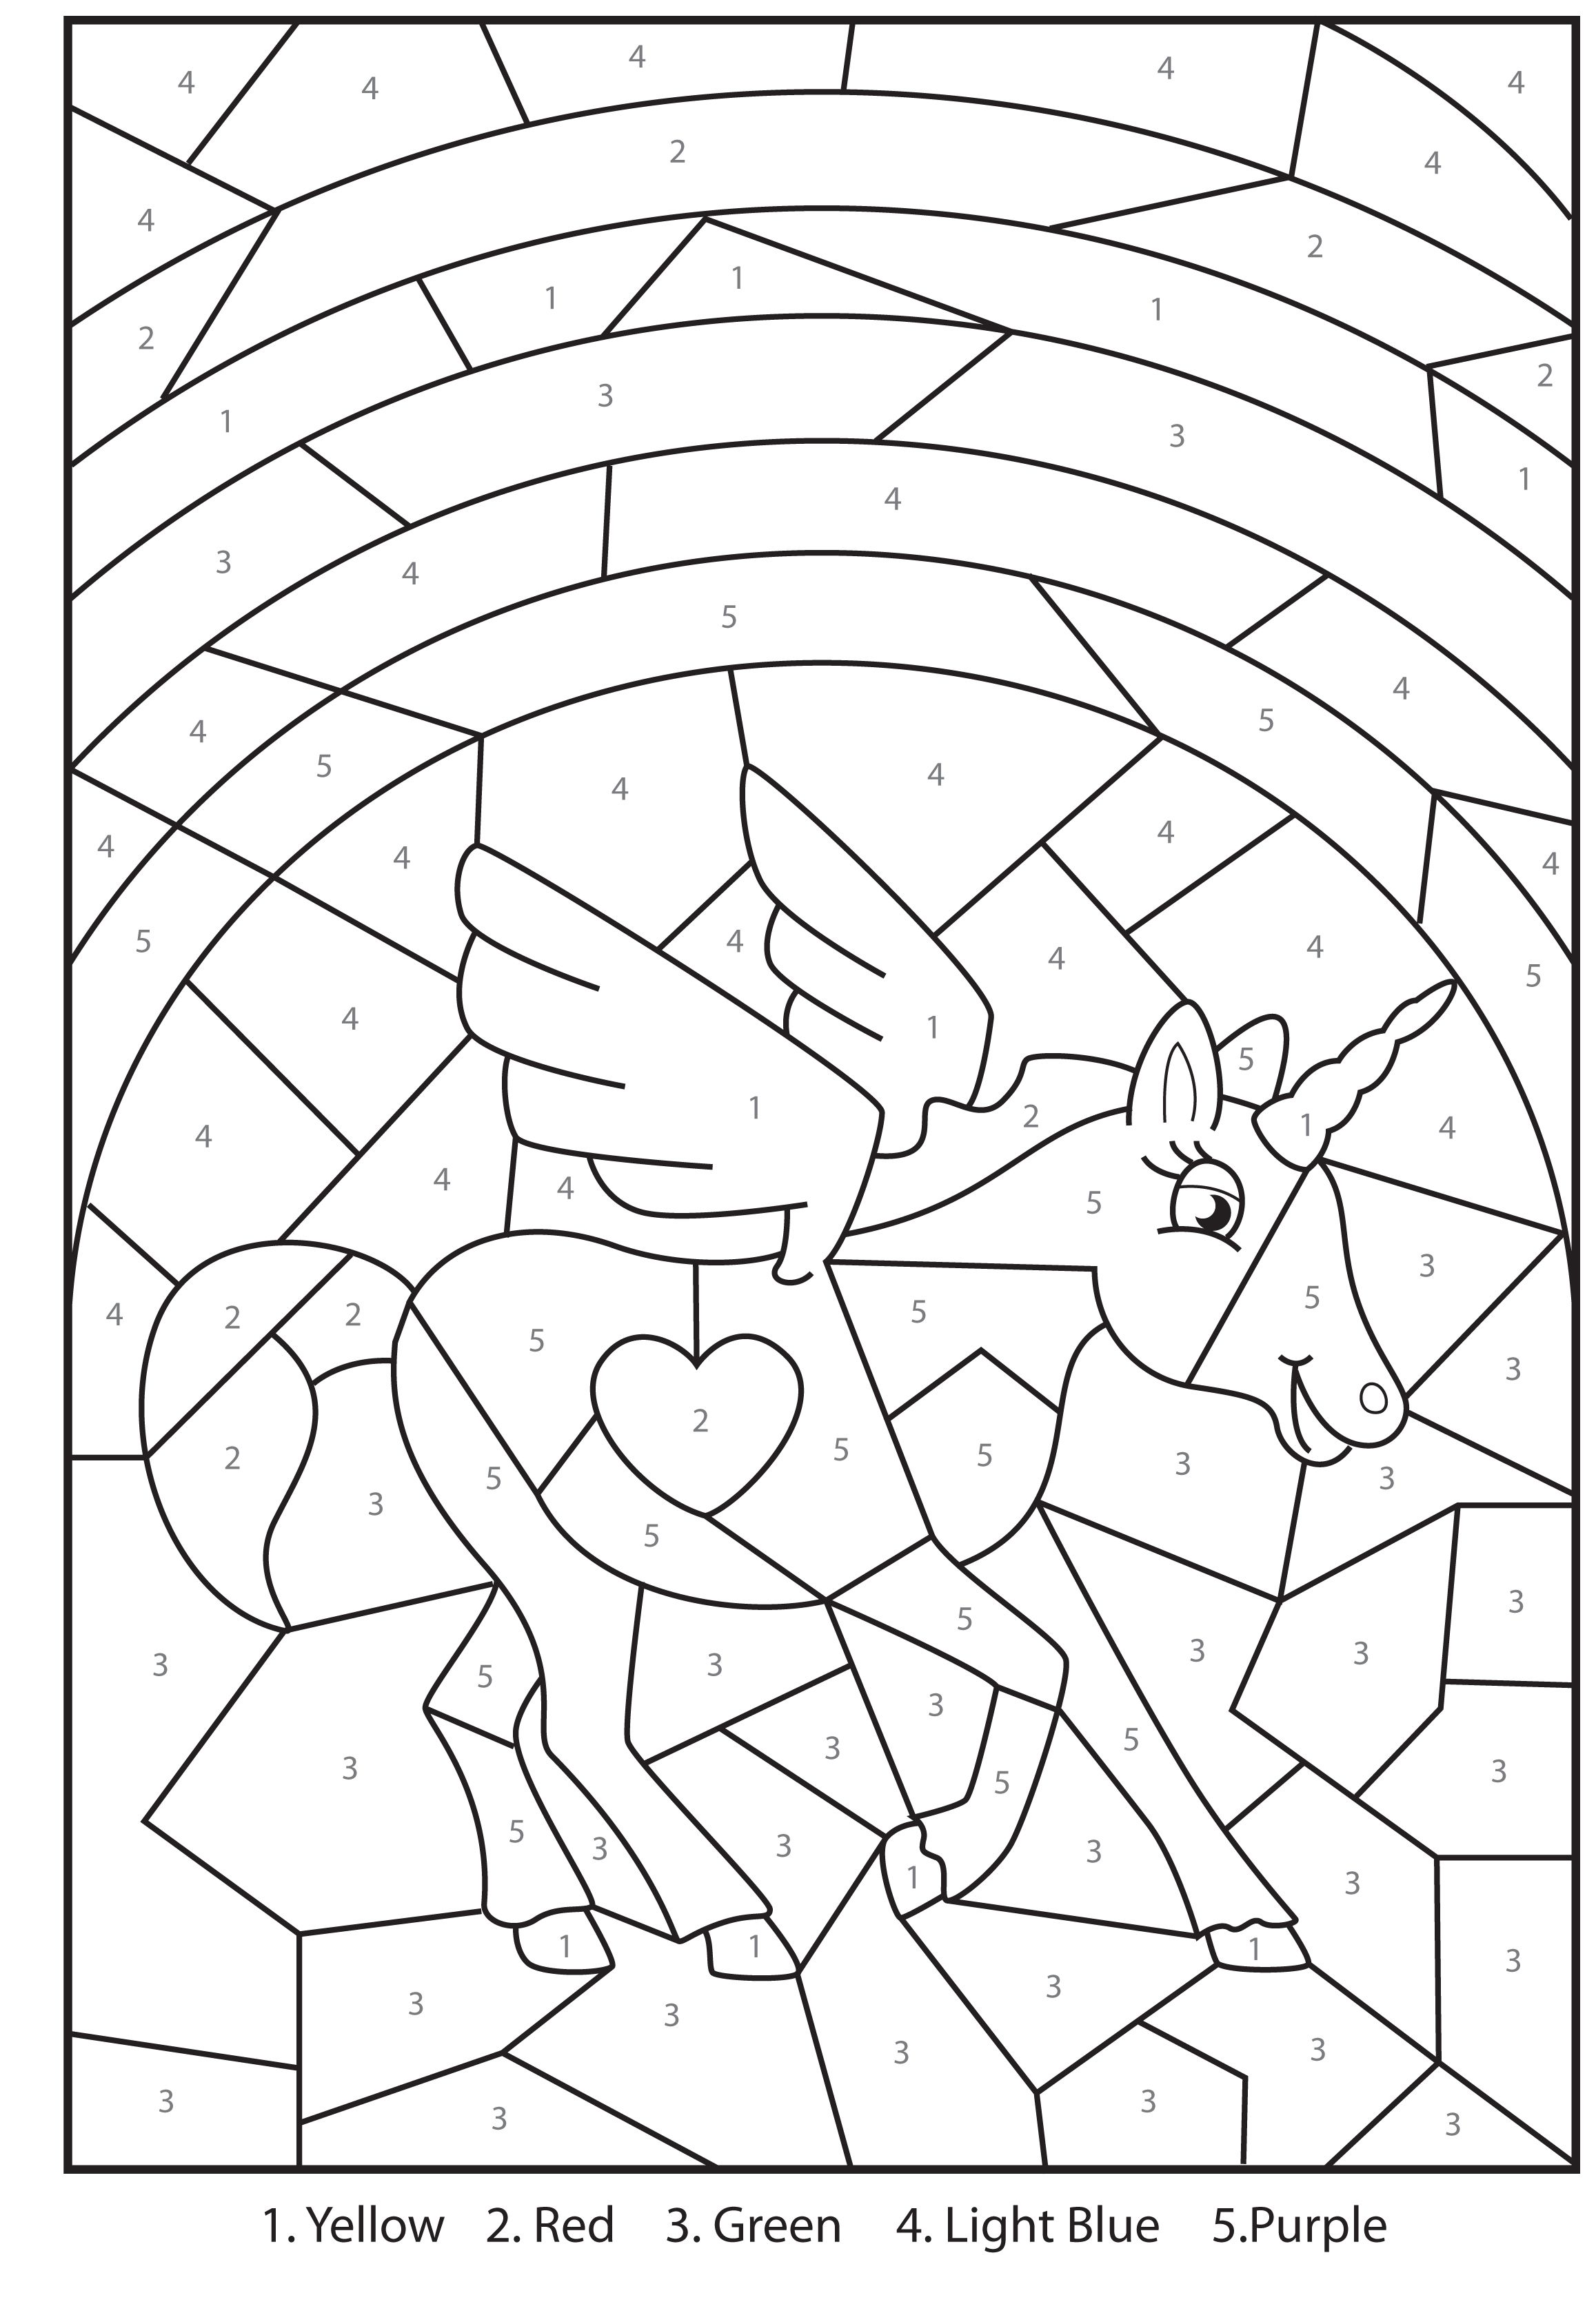 childrens coloring pages numbers.html